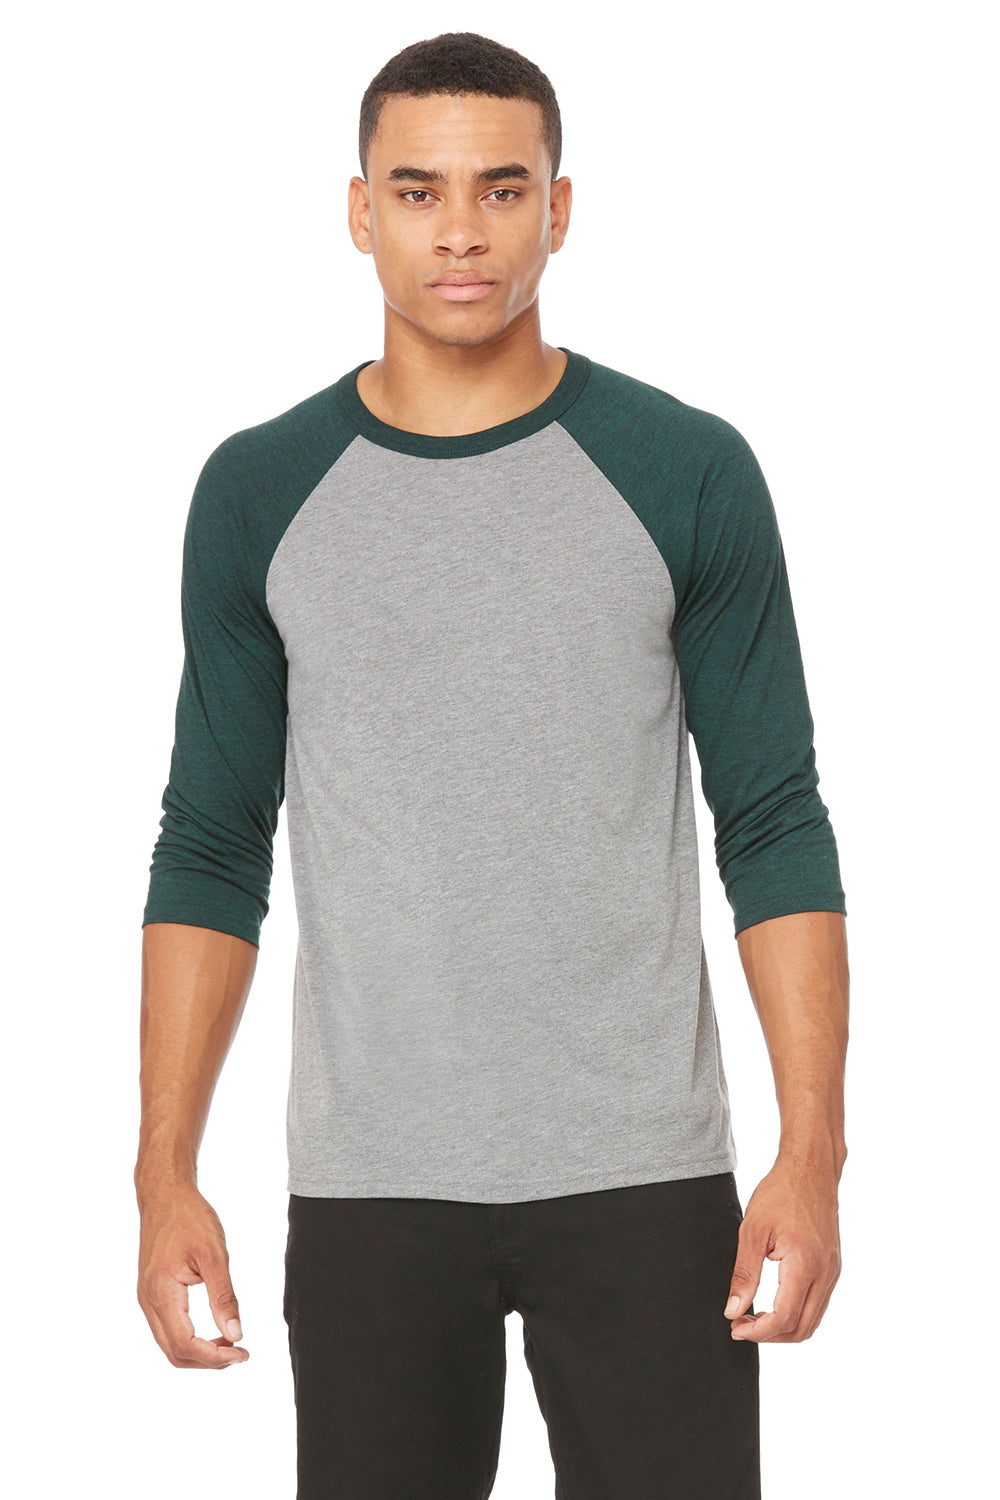 Bella + Canvas 3200 Mens 3/4 Sleeve Crewneck T-Shirt Grey/Emerald Green Front